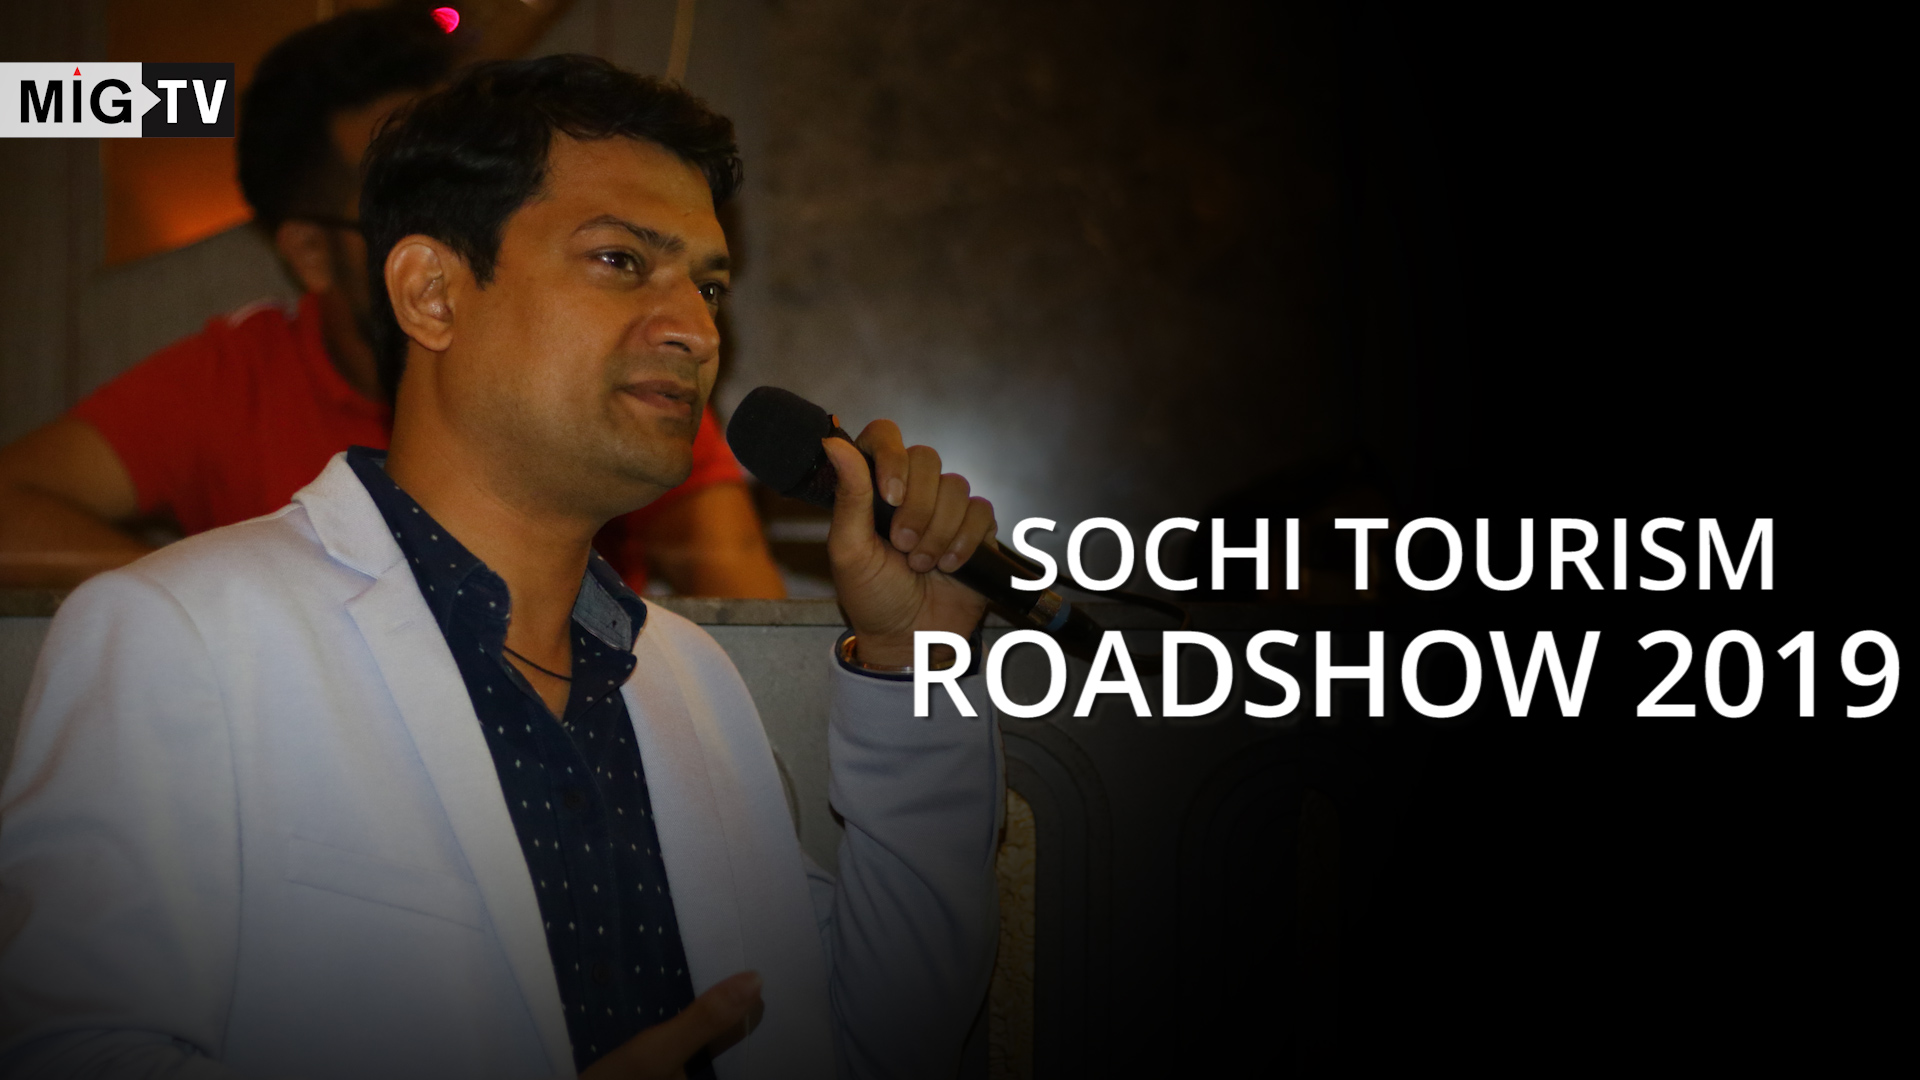 Sochi Tourism Roadshow 2019